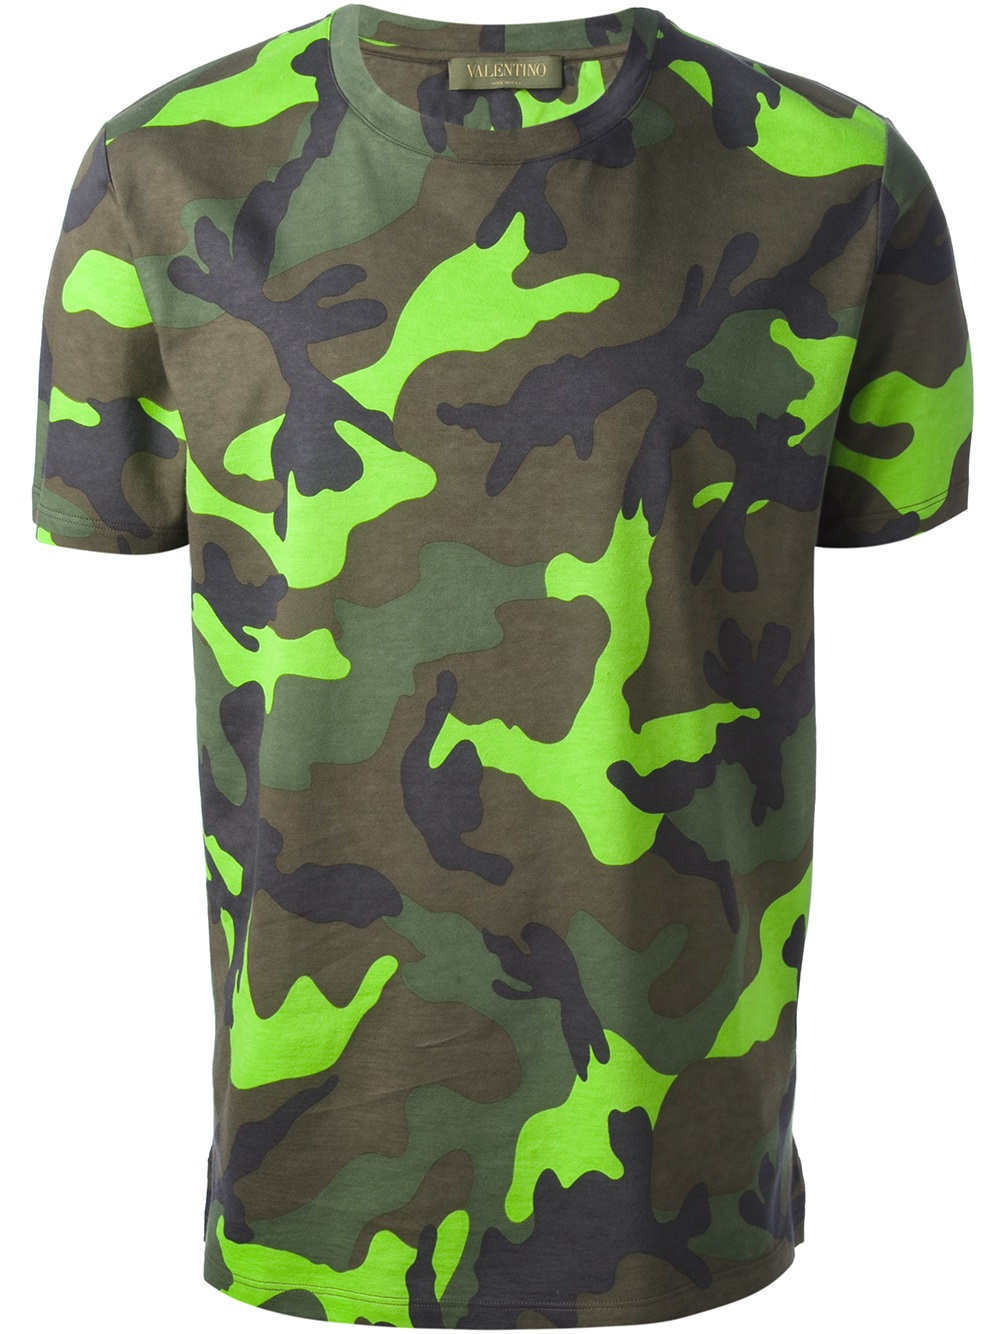 Discount Genuine camo-print T-shirt - Green Valentino Buy Cheap Low Shipping Fake FpjazZpi9F